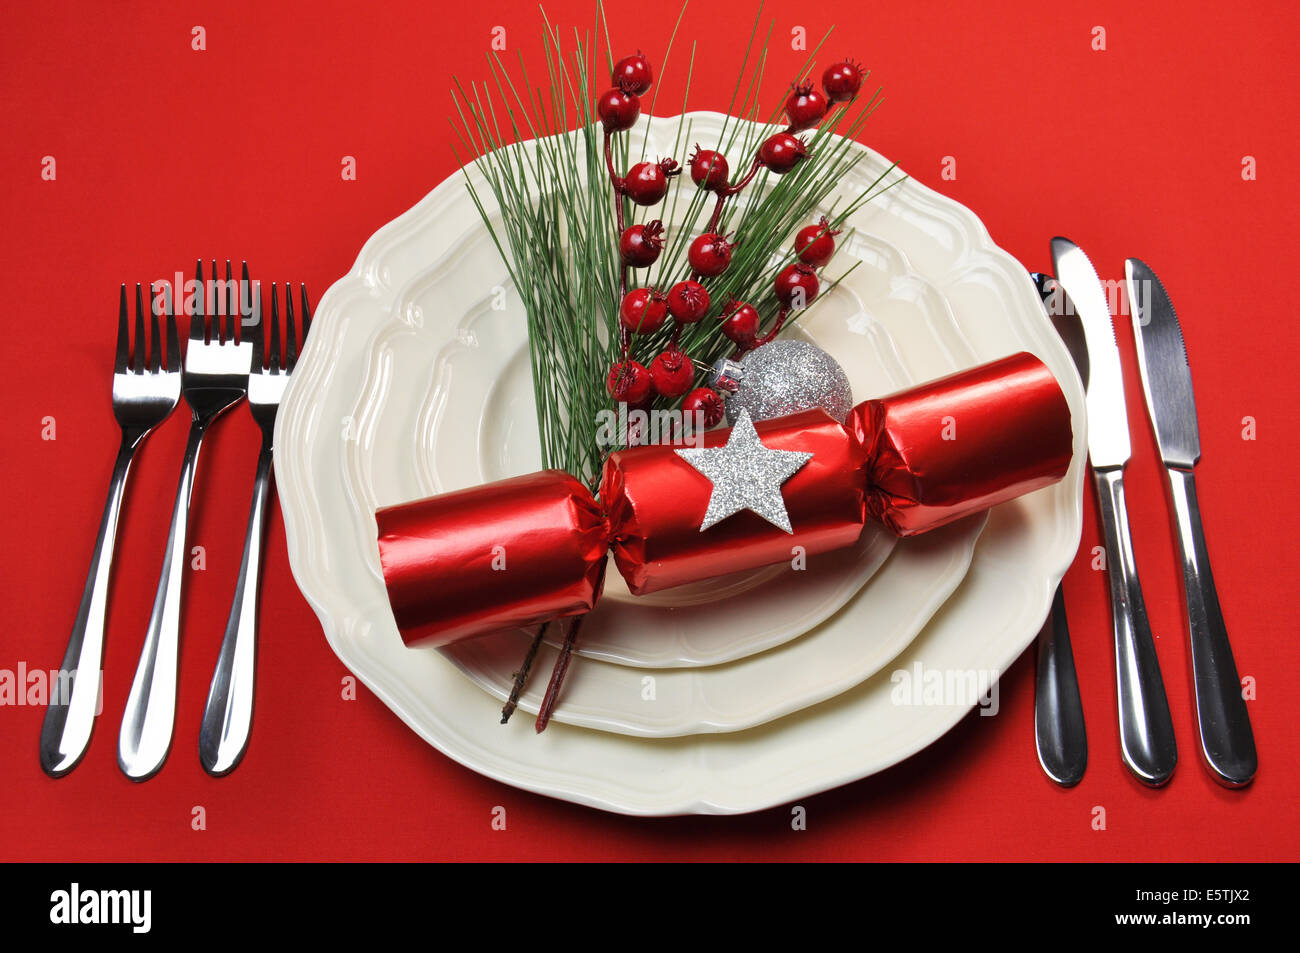 Modern bright red Christmas table setting with cracker and baubles plates and cutlery on a red tablecloth background. & Modern bright red Christmas table setting with cracker and baubles ...